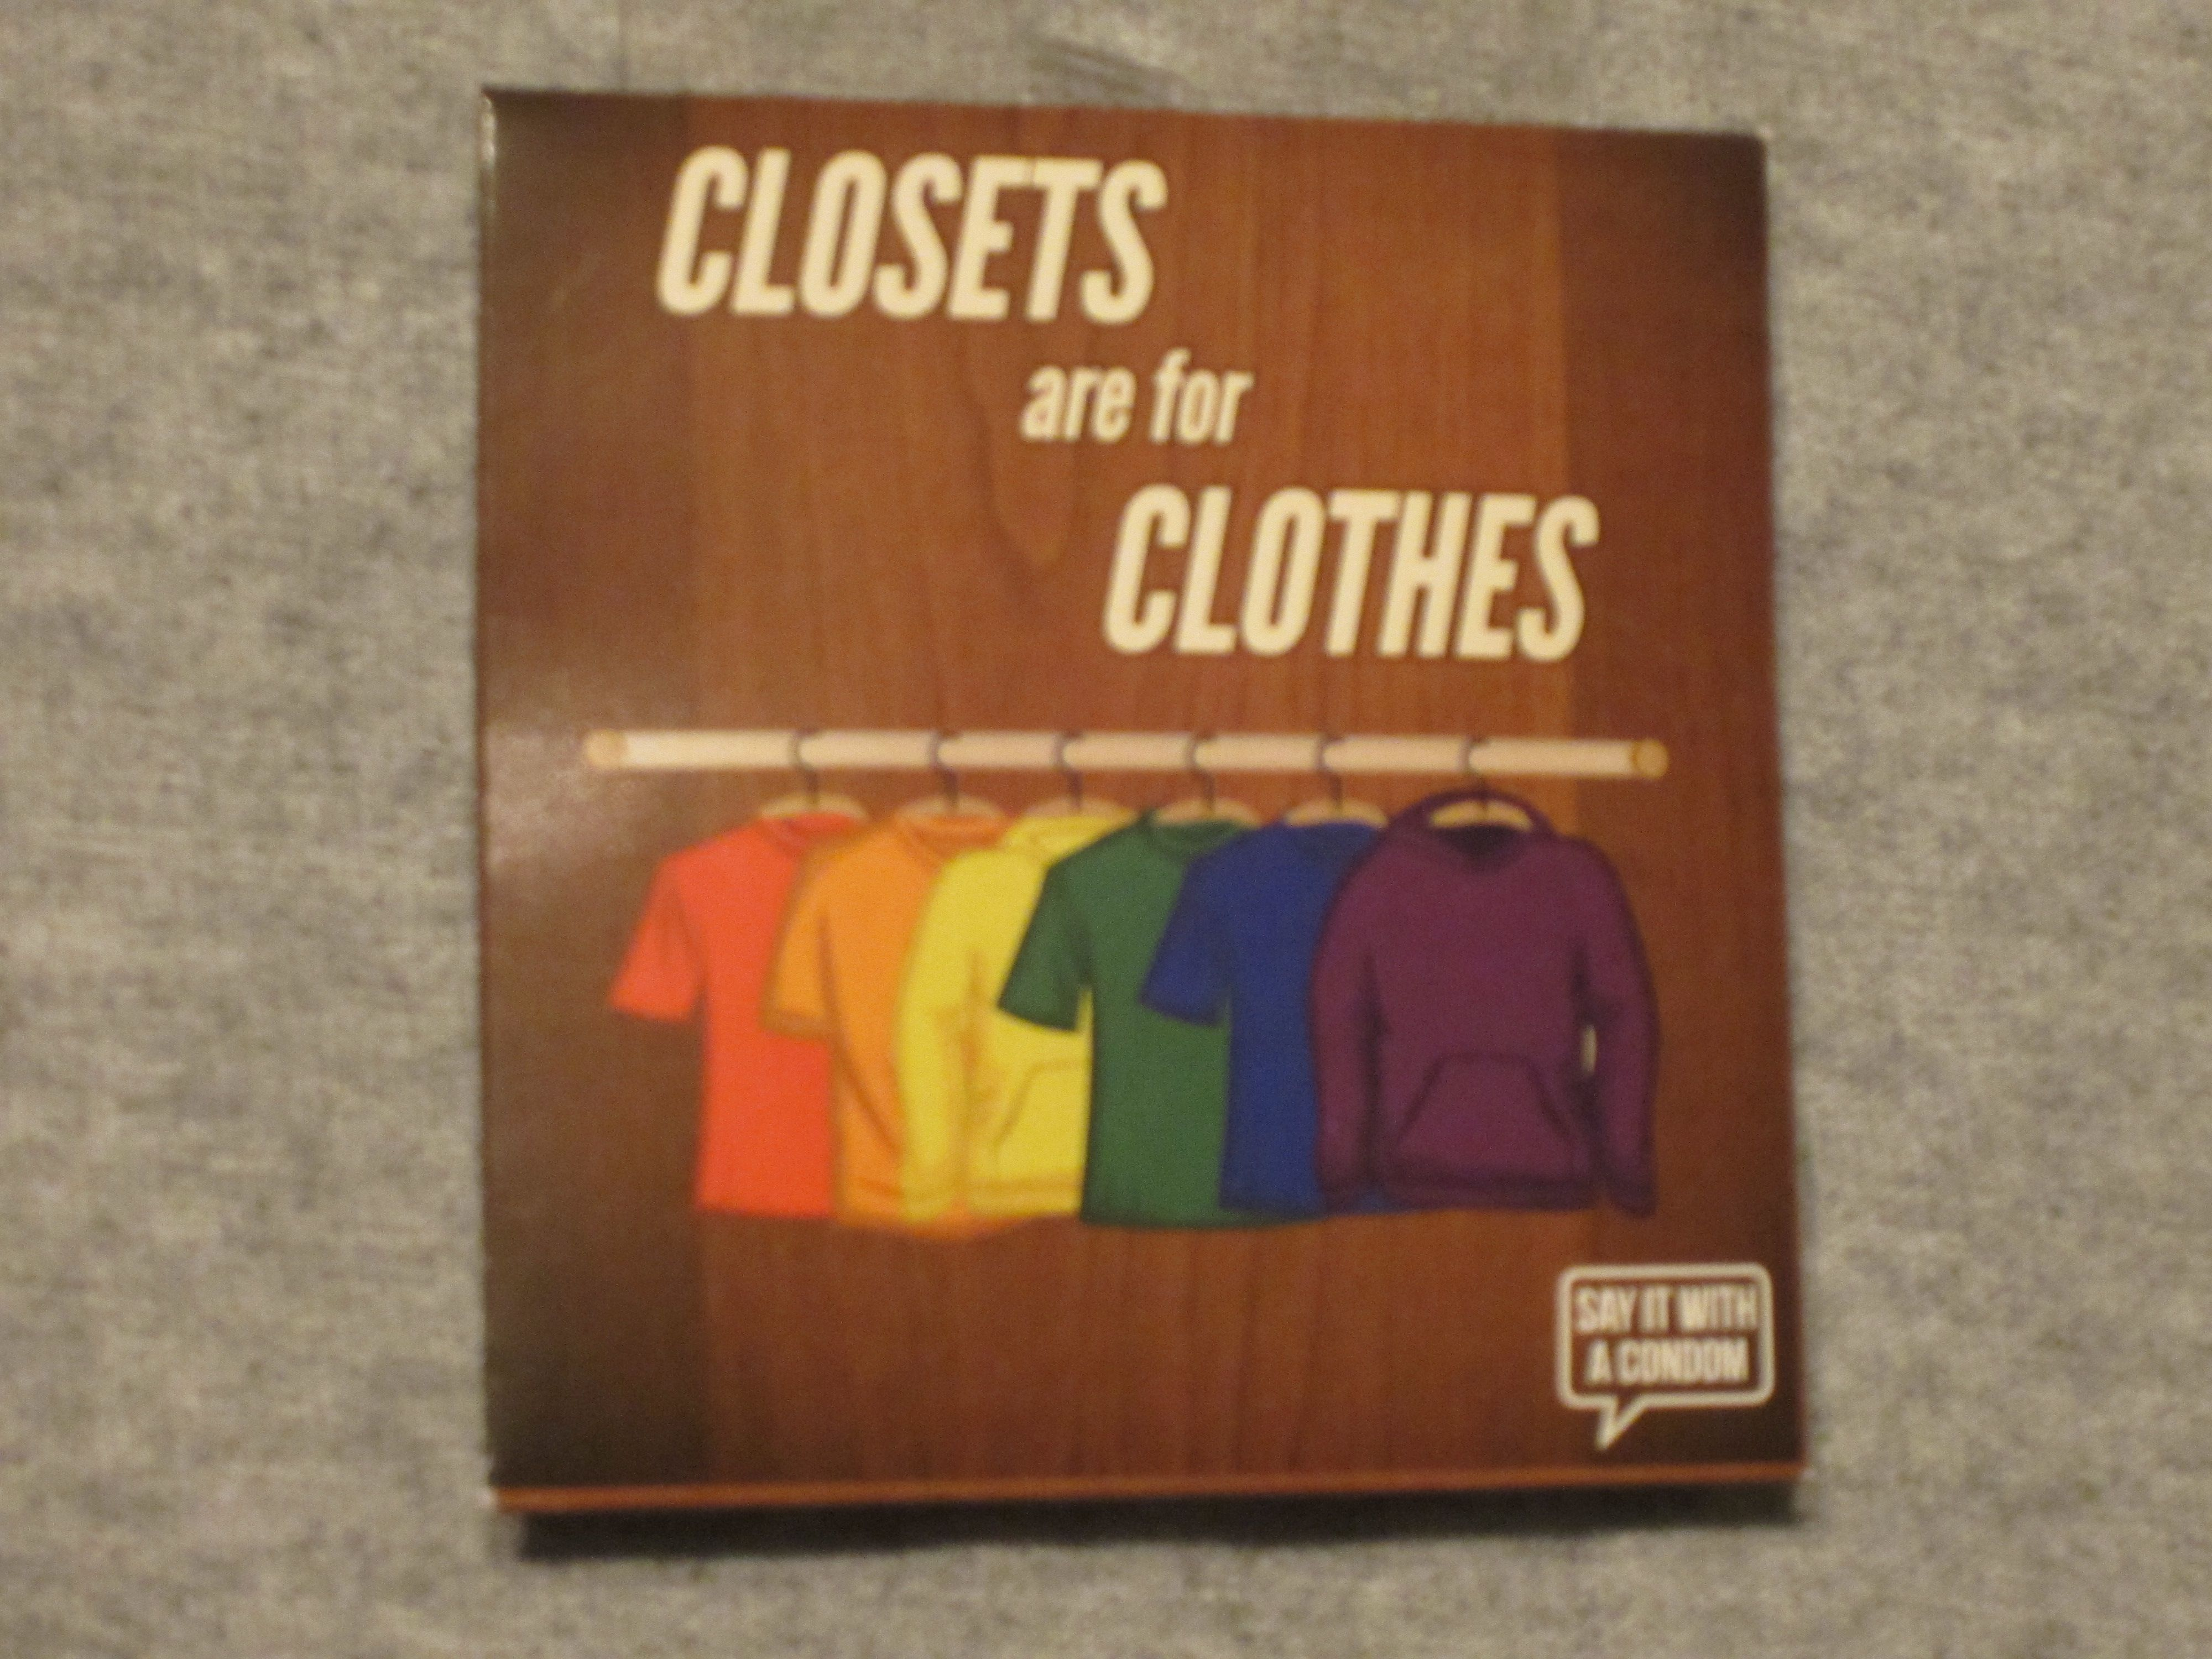 gallery herstory clothes are closet closets poster for cwlu